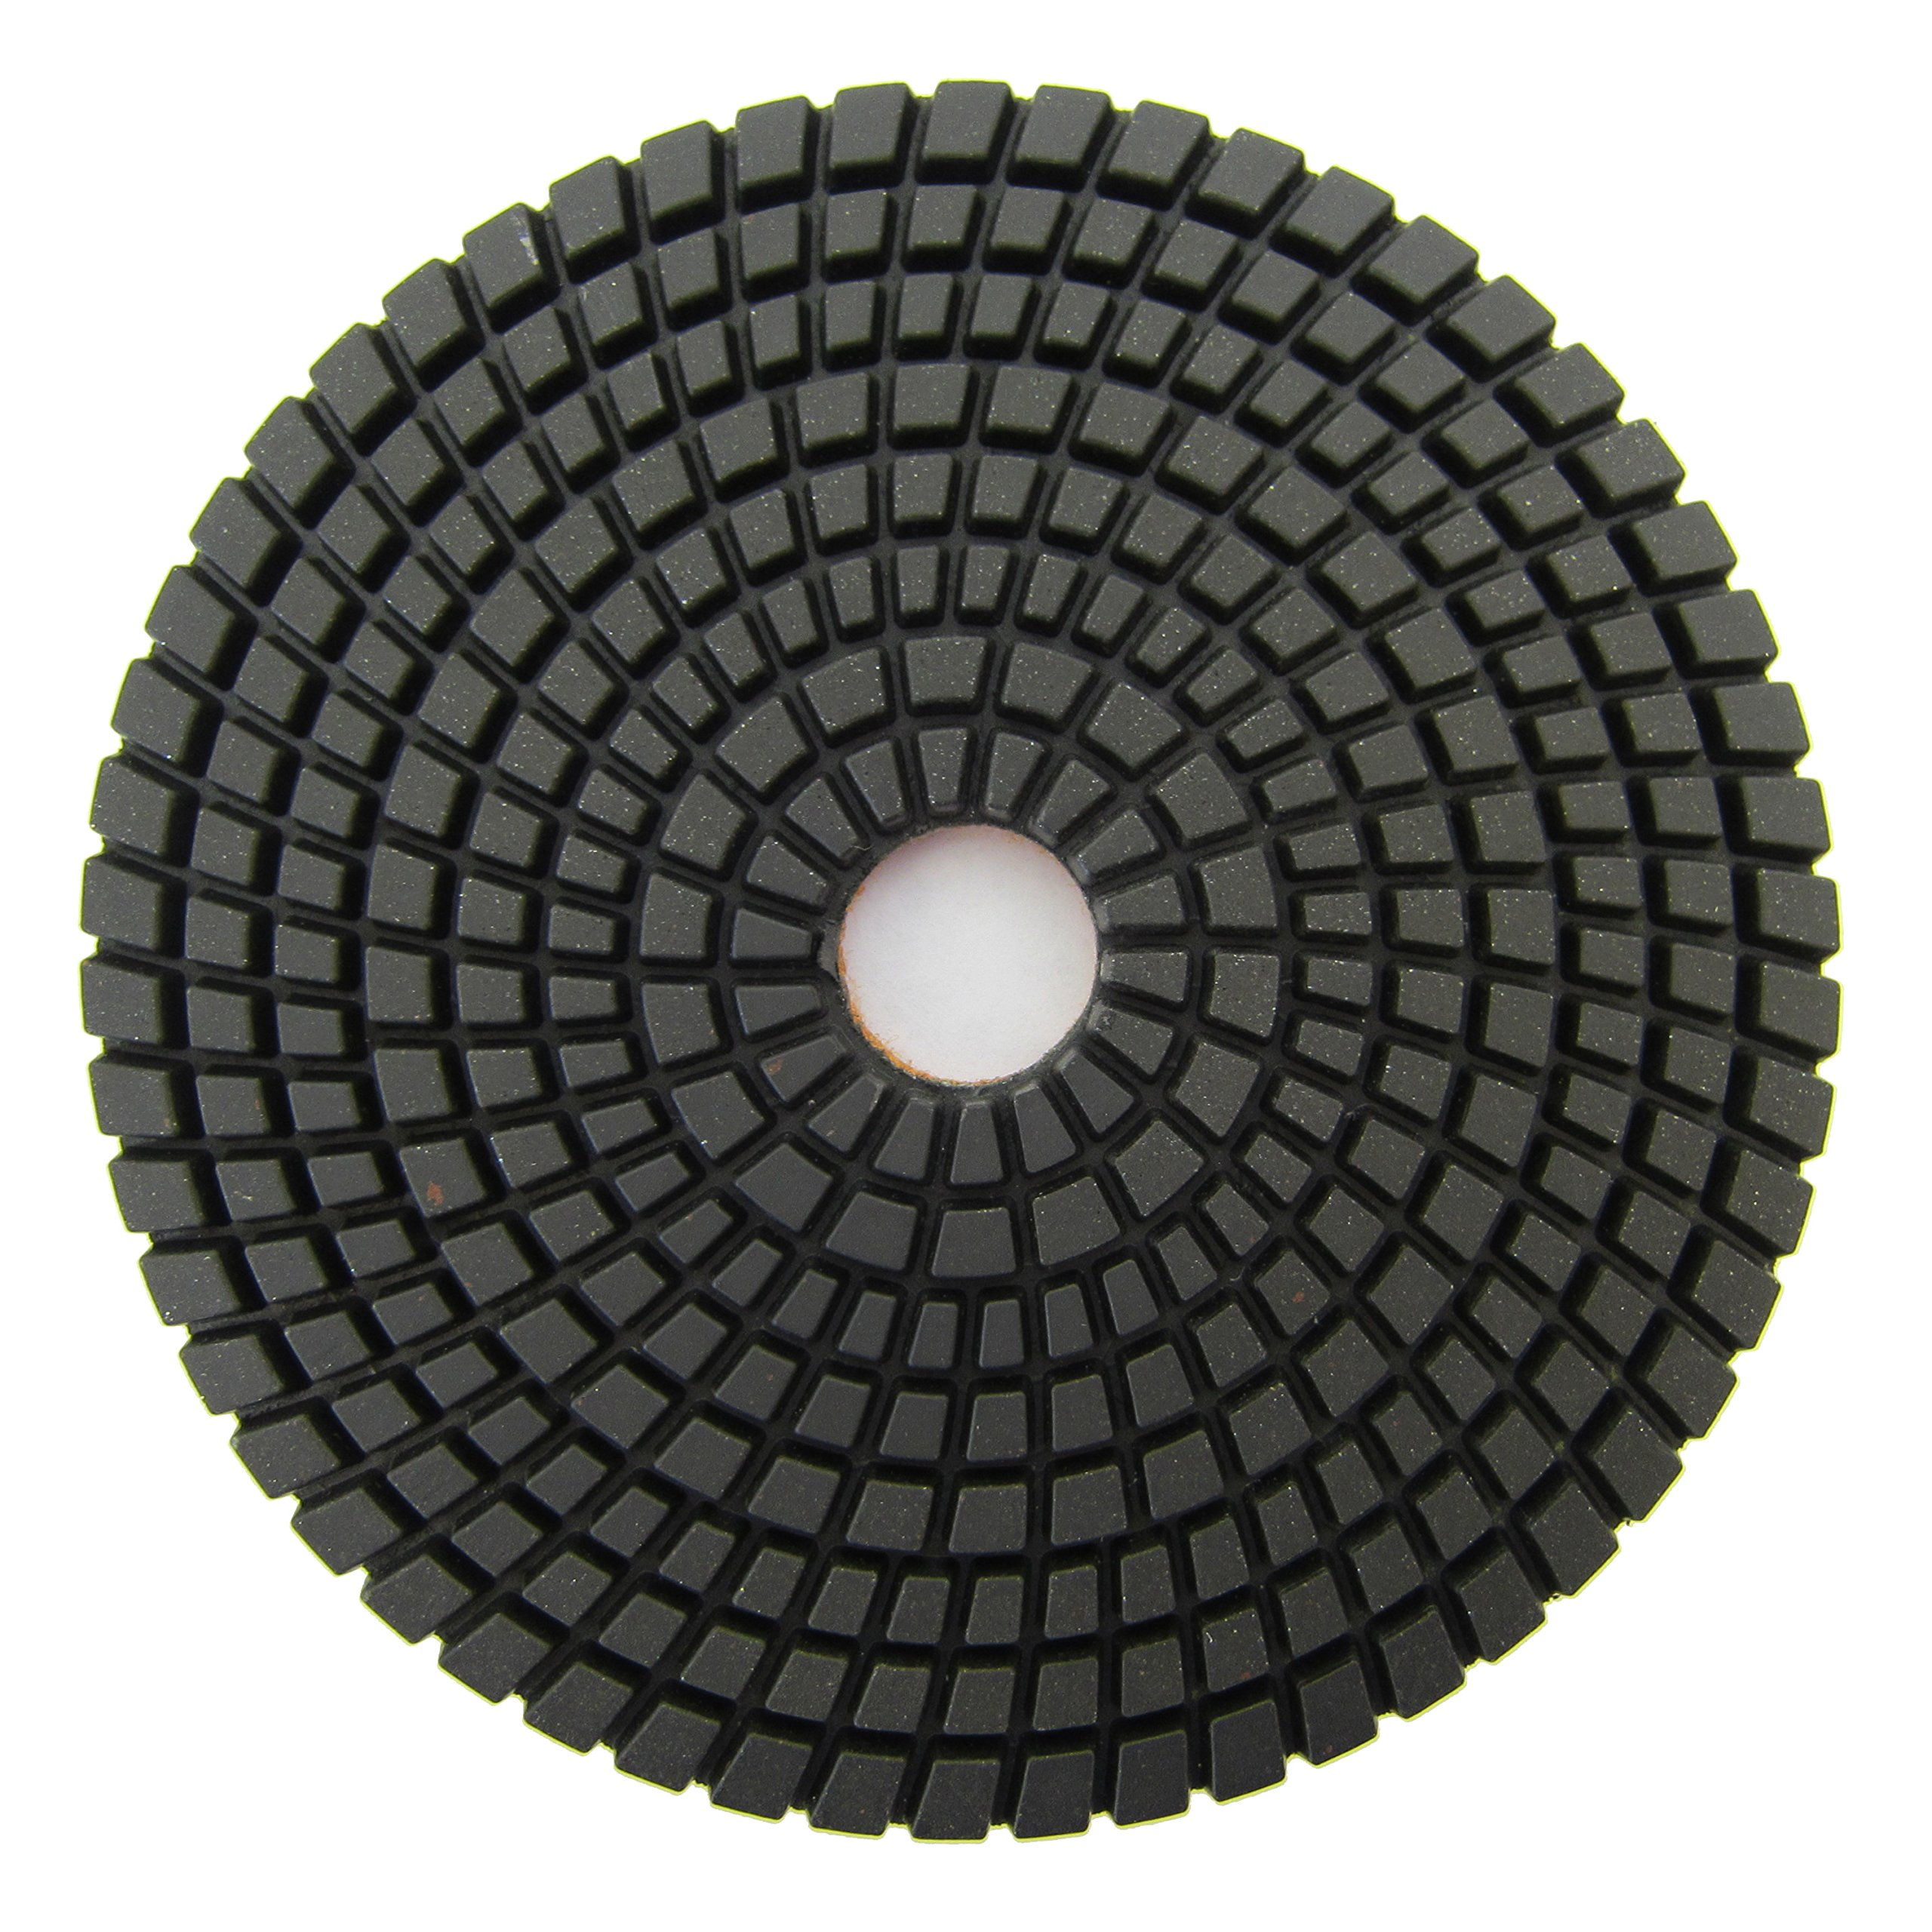 Wet Diamond Polishing Pads 5 in. for Granite and Marble Polishing by Archer USA (#100 Grit)